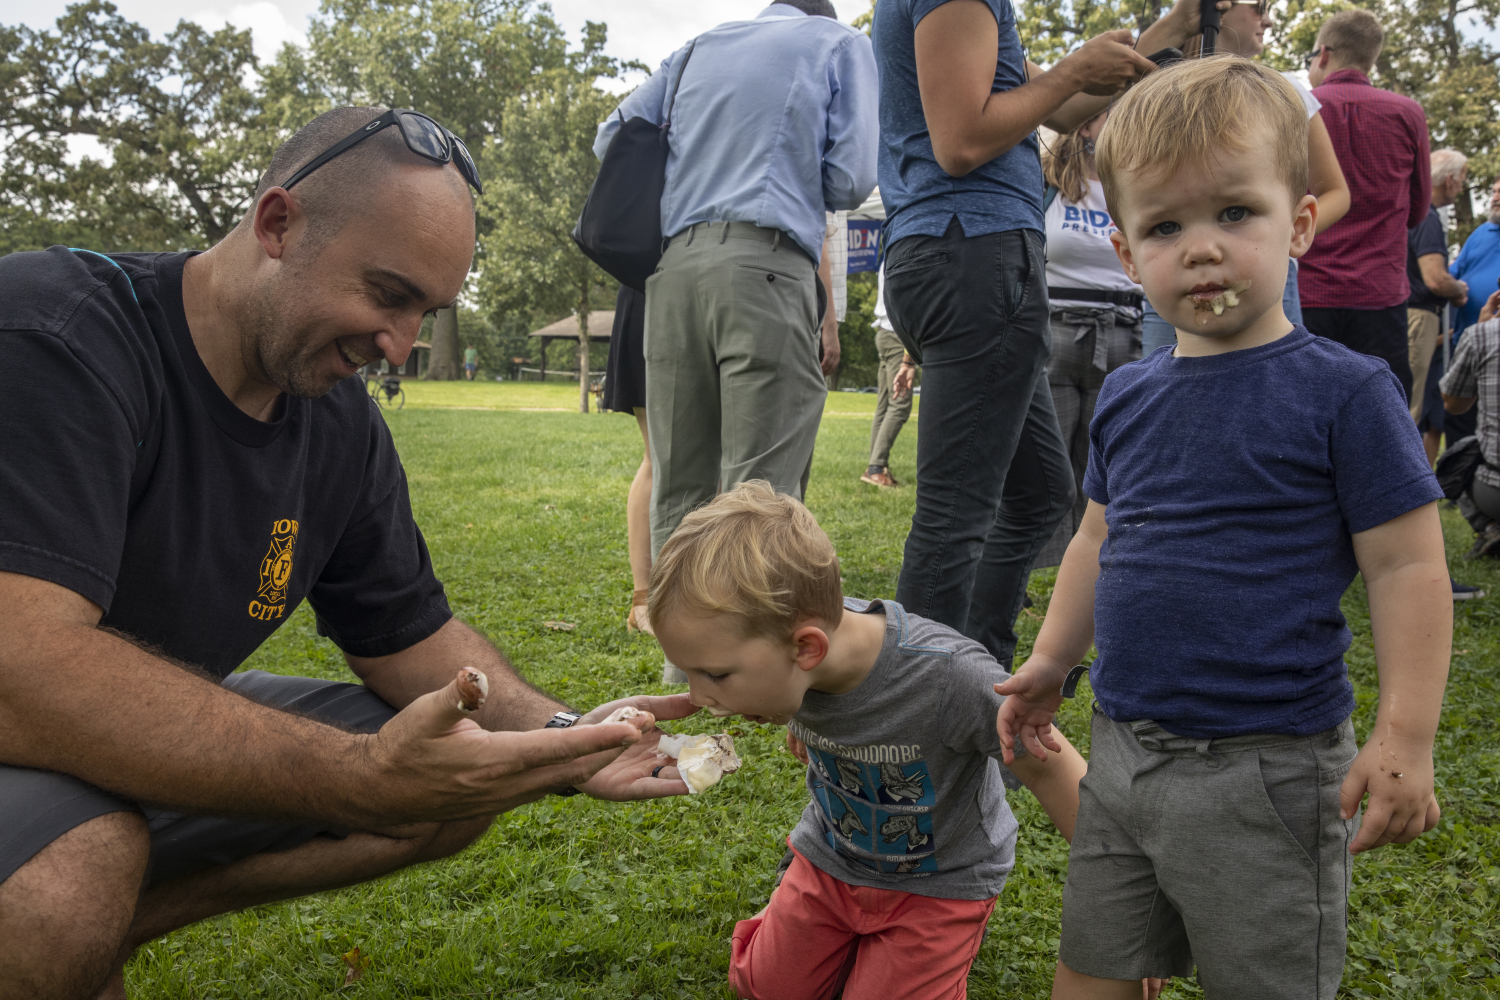 Sam+Brown+and+sons+Leo+and+Logan+eat+the+ice+cream+handed+out+by+Former+Vice+President+Joe+Biden+during+the+Iowa+City+Federation+of+Labor+Labor+Day+Picnic+in+City+Park+on+September+2%2C+2019.+Among+the+candidates+to+attend+the+event+were+Sen.+Michael+Bennet+and+Former+Vice+President+Joe+Biden.+%28Ryan+Adams%2F+The+Daily+Iowan%29